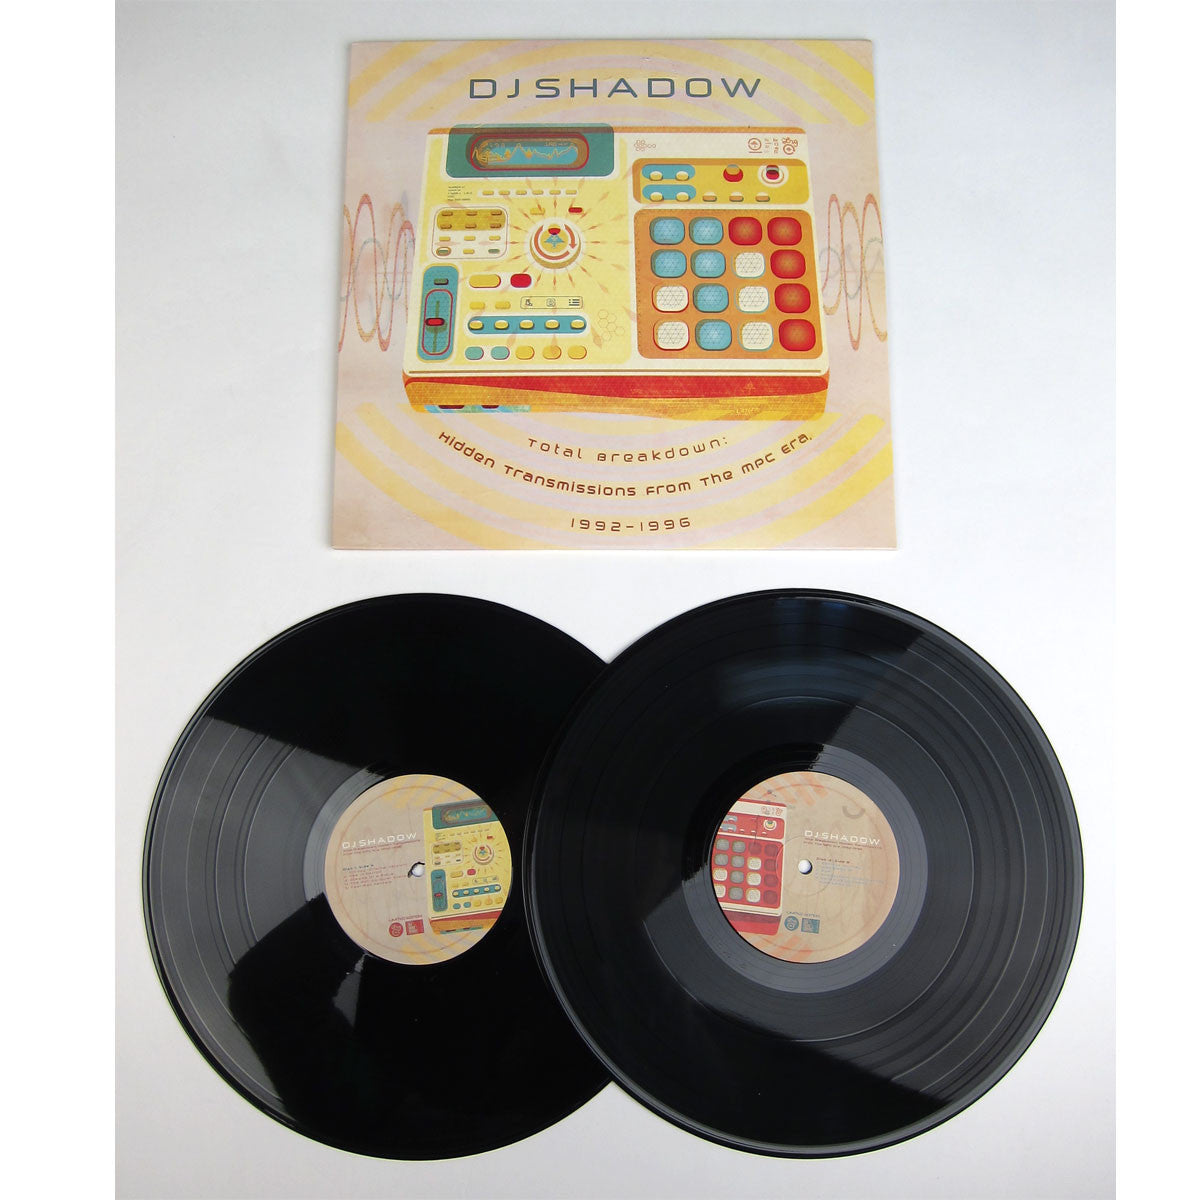 DJ Shadow: Hidden Transmissions From The MPC Era 1992-1996 Vinyl 2LP detail